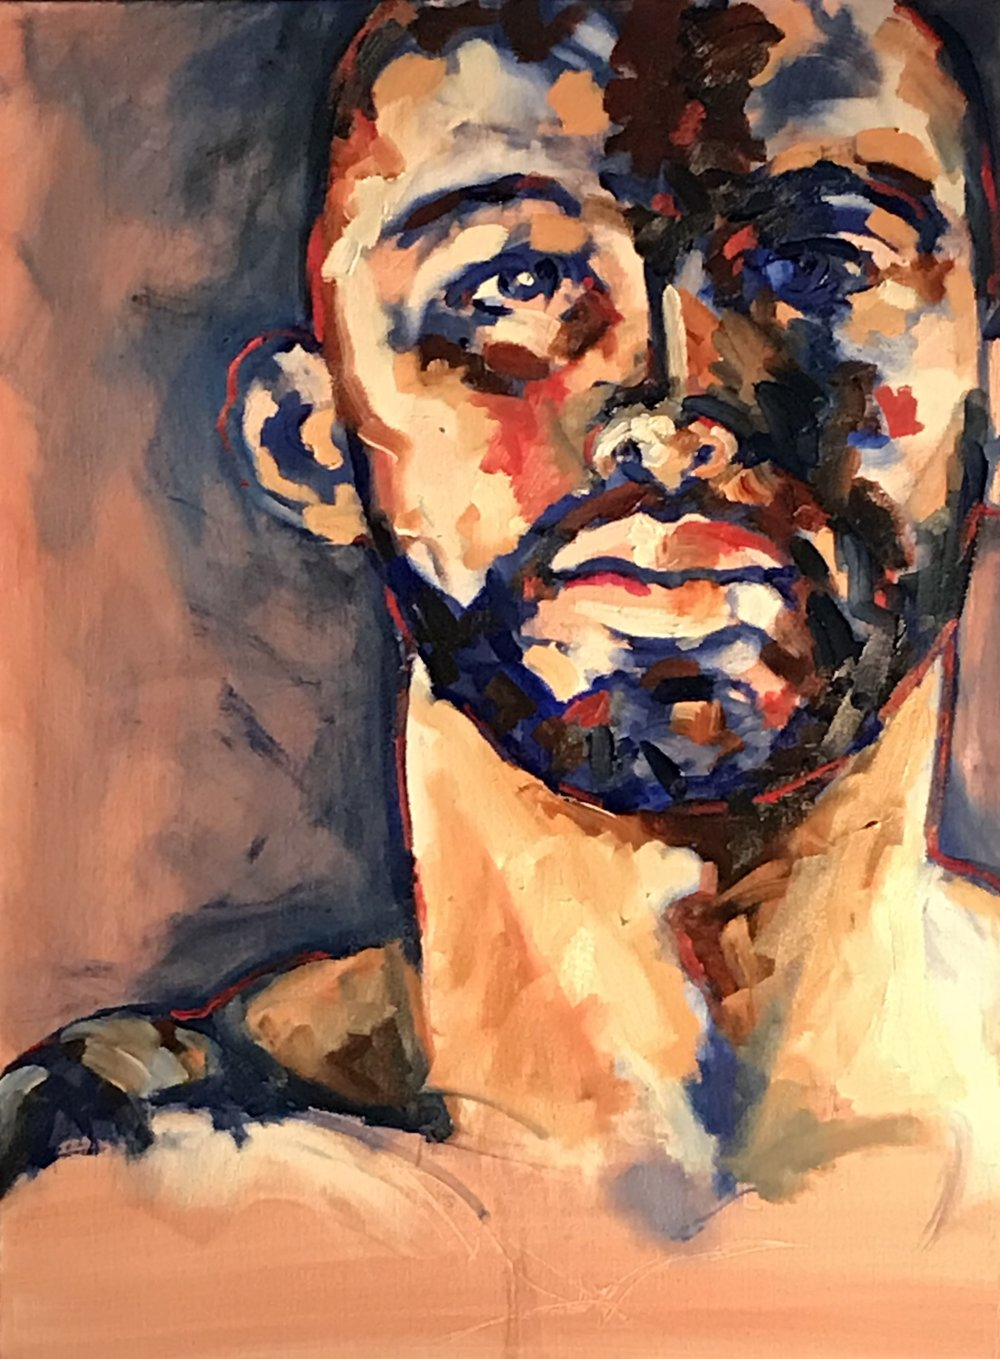 Simon Oil On Canvas 16x20  $800